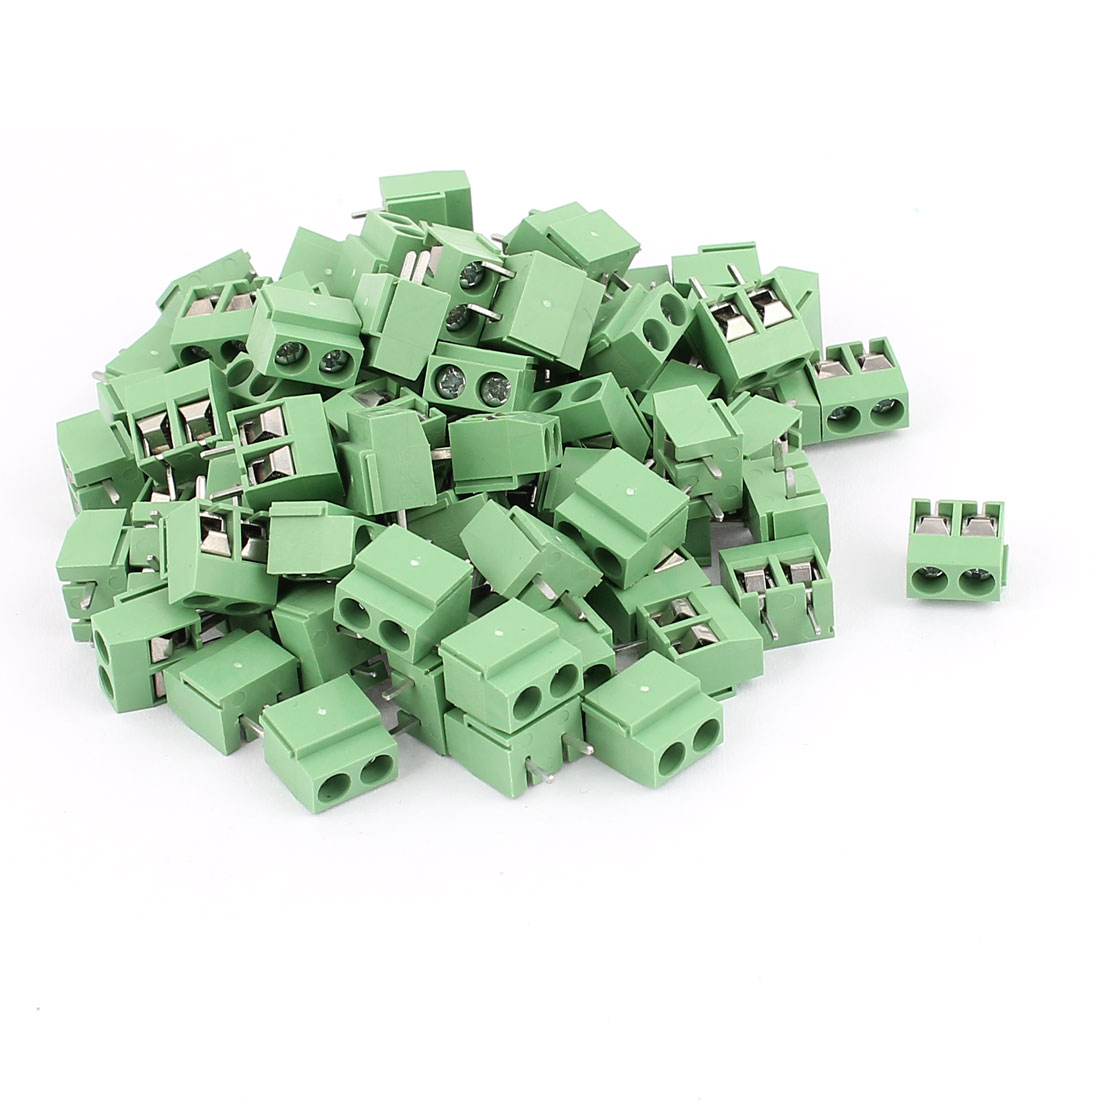 83 Pcs 5.0V 300V 10A 2 positions 1mm Pitch Pluggable Terminal Block Green